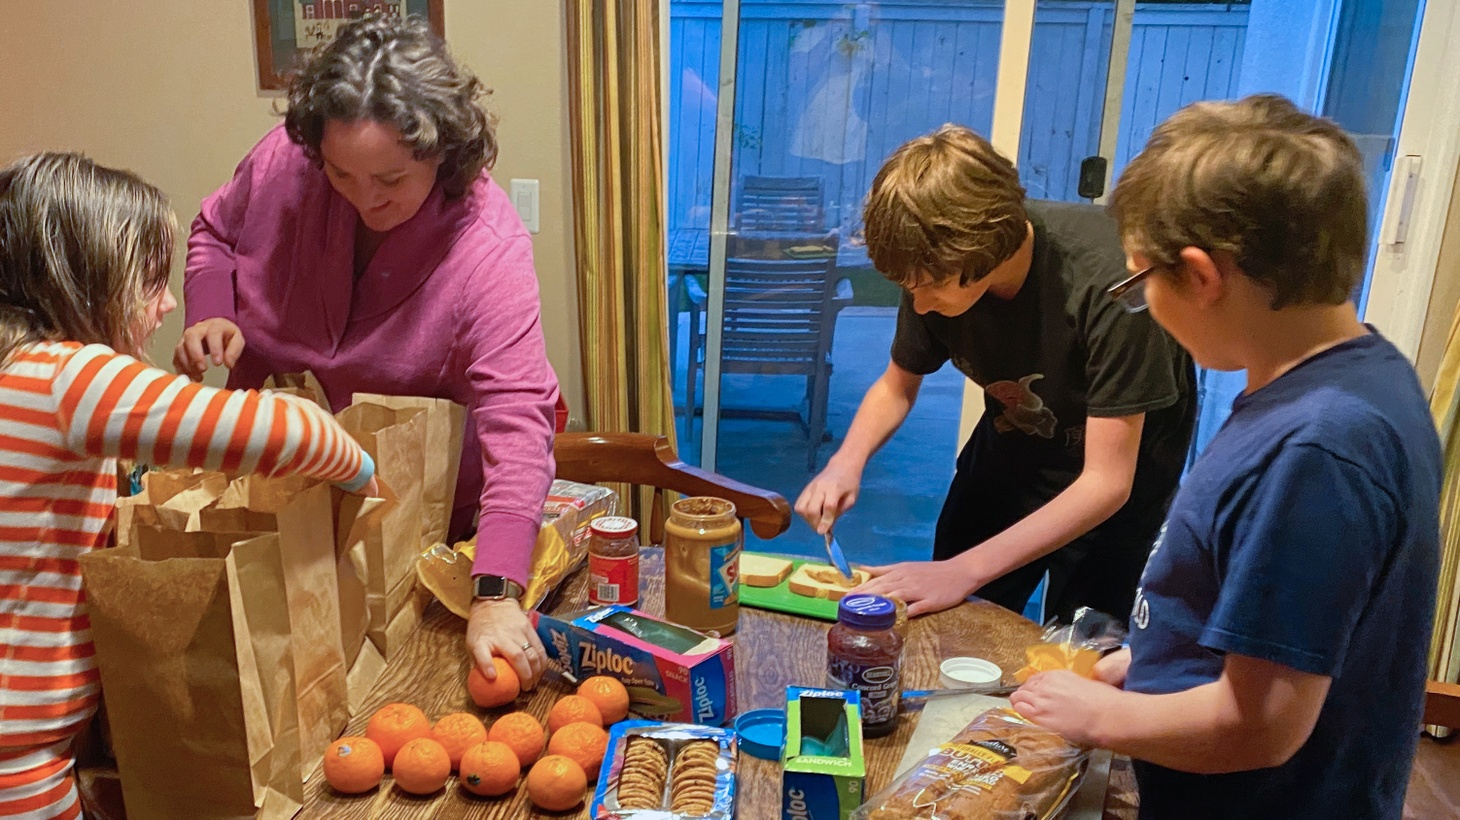 Rep. Katie Porter left Washington D.C. and returned to her Orange County home in mid-March when social distancing became necessary and schools shifted to online classes. In this photo, she and her kids are making sack lunches for people experiencing homelessness.